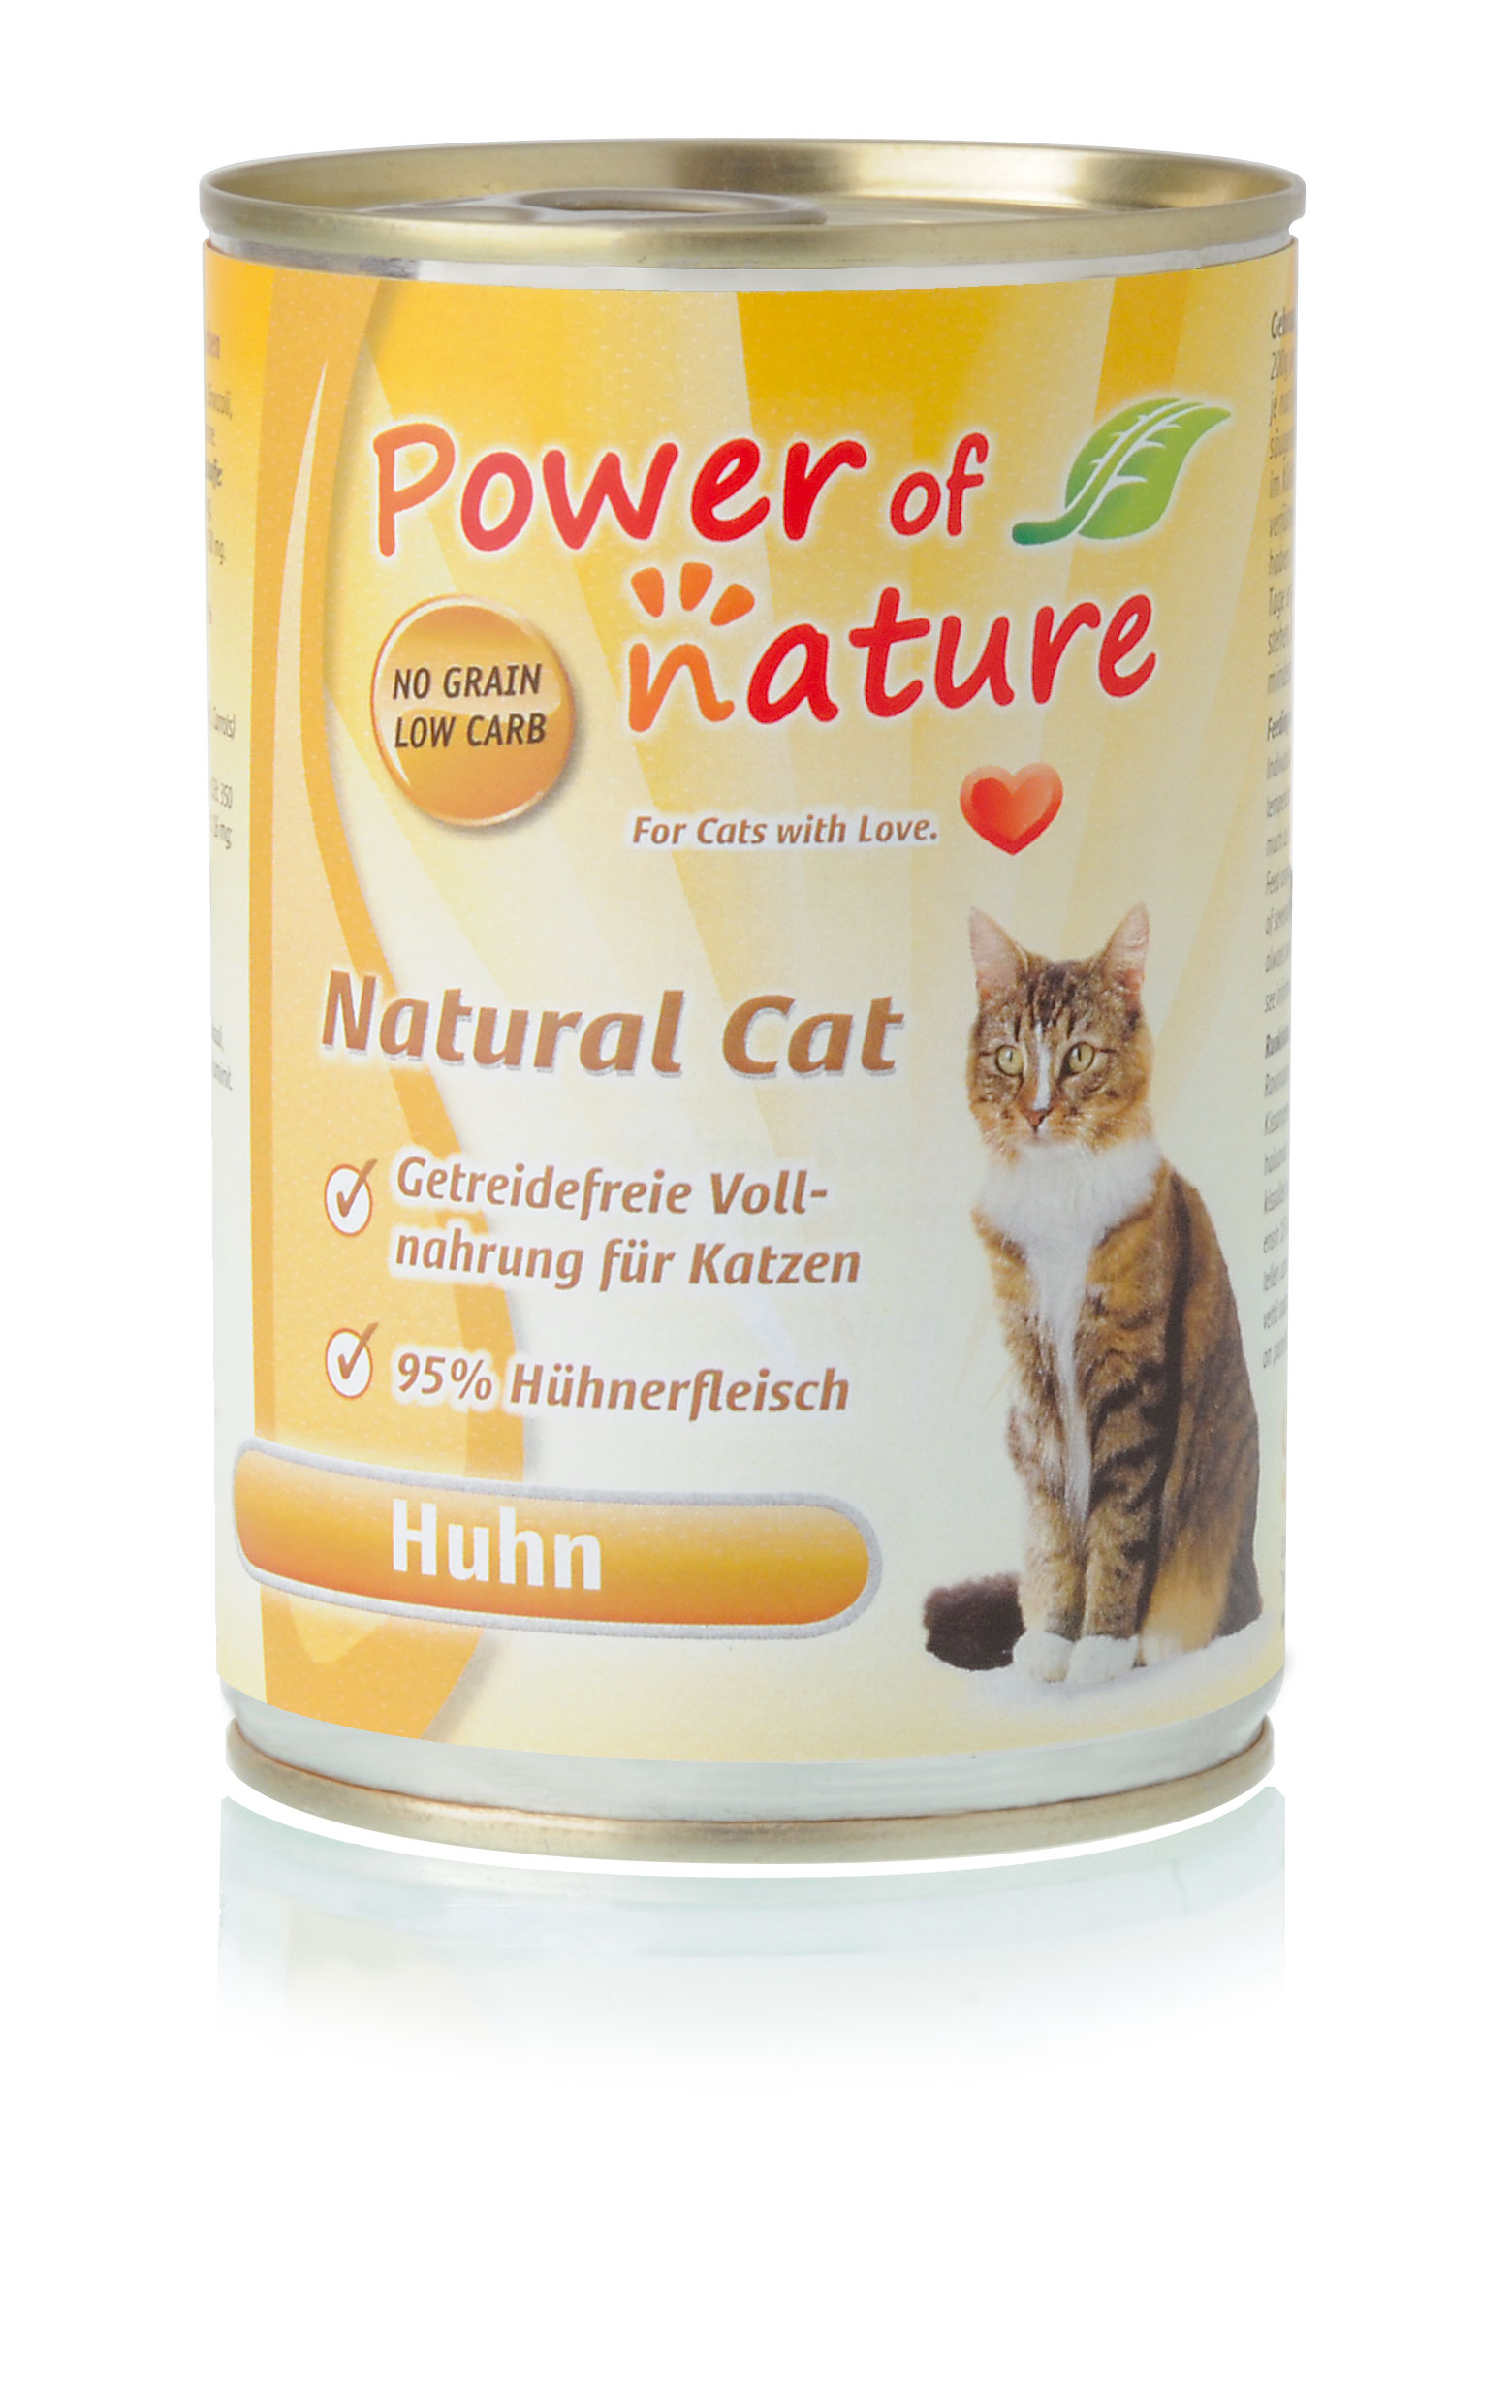 Power of Nature Natural Cat Dose Huhn 24 x 400g